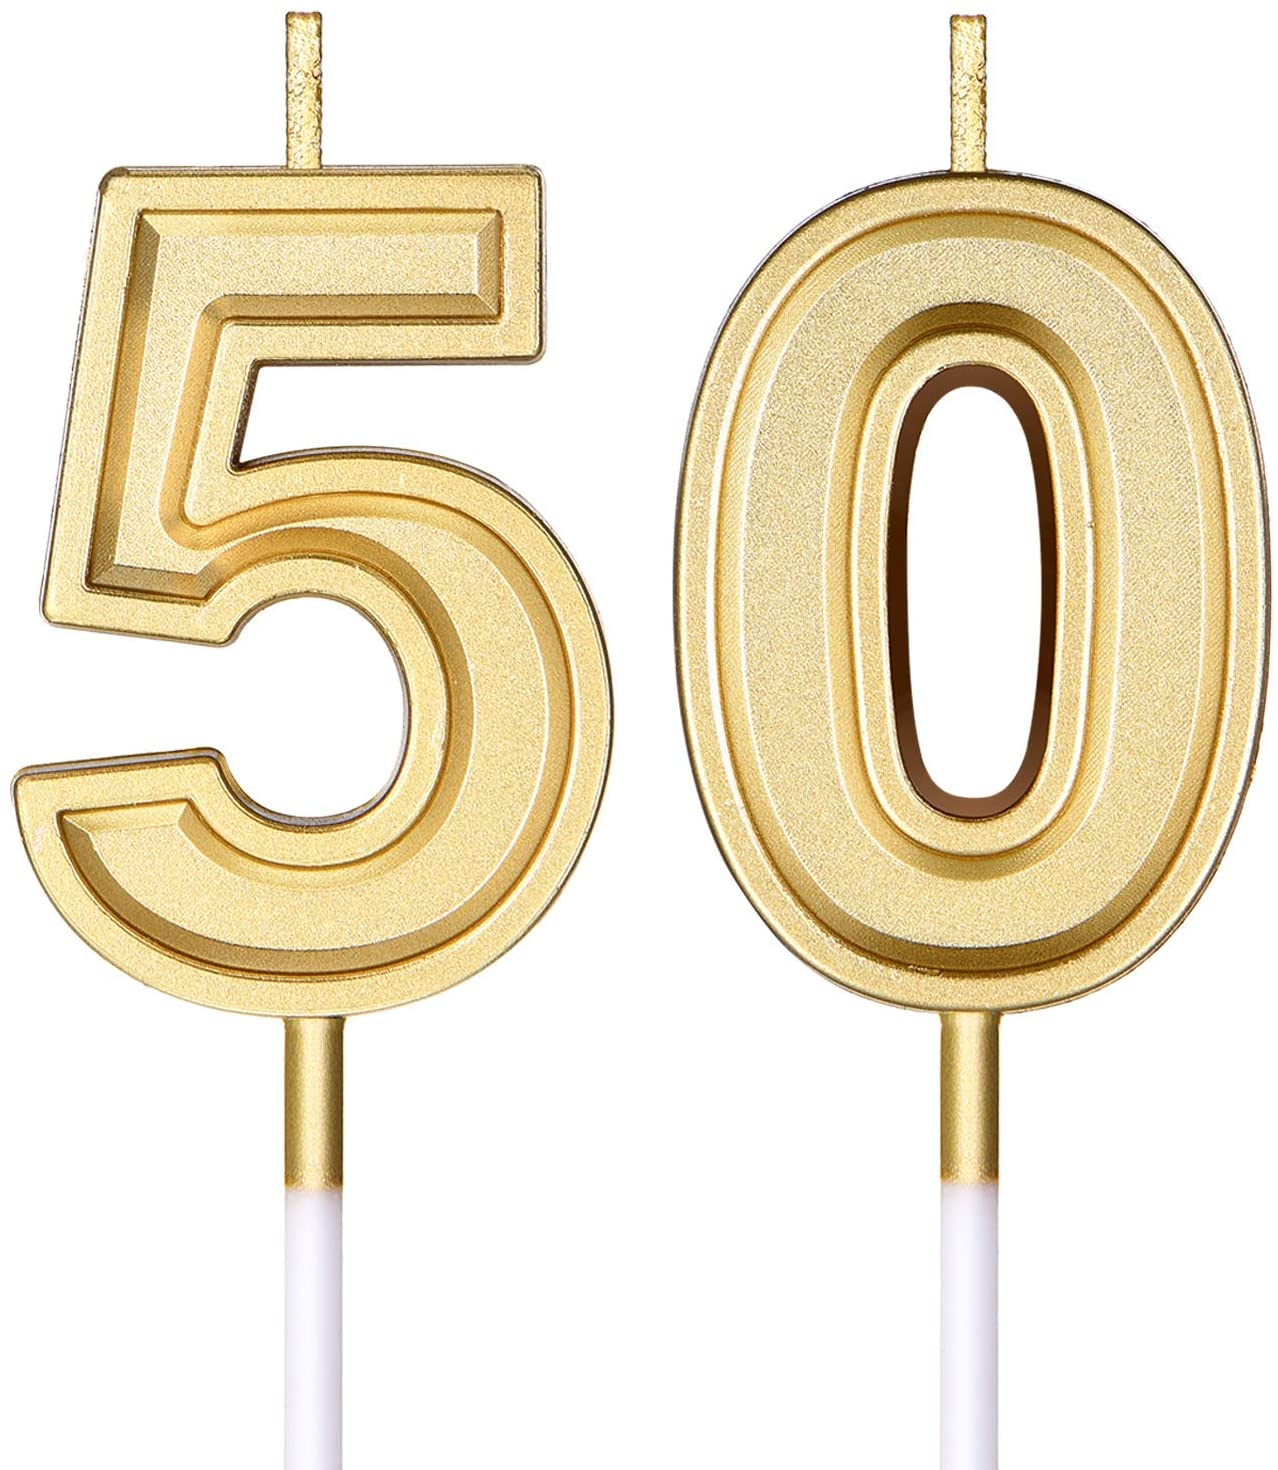 50th Birthday Candles Cake Numeral Candles Happy Birthday Cake Candles Topper Decoration for Birthday Wedding Anniversary Celebration Supplies (Gold)